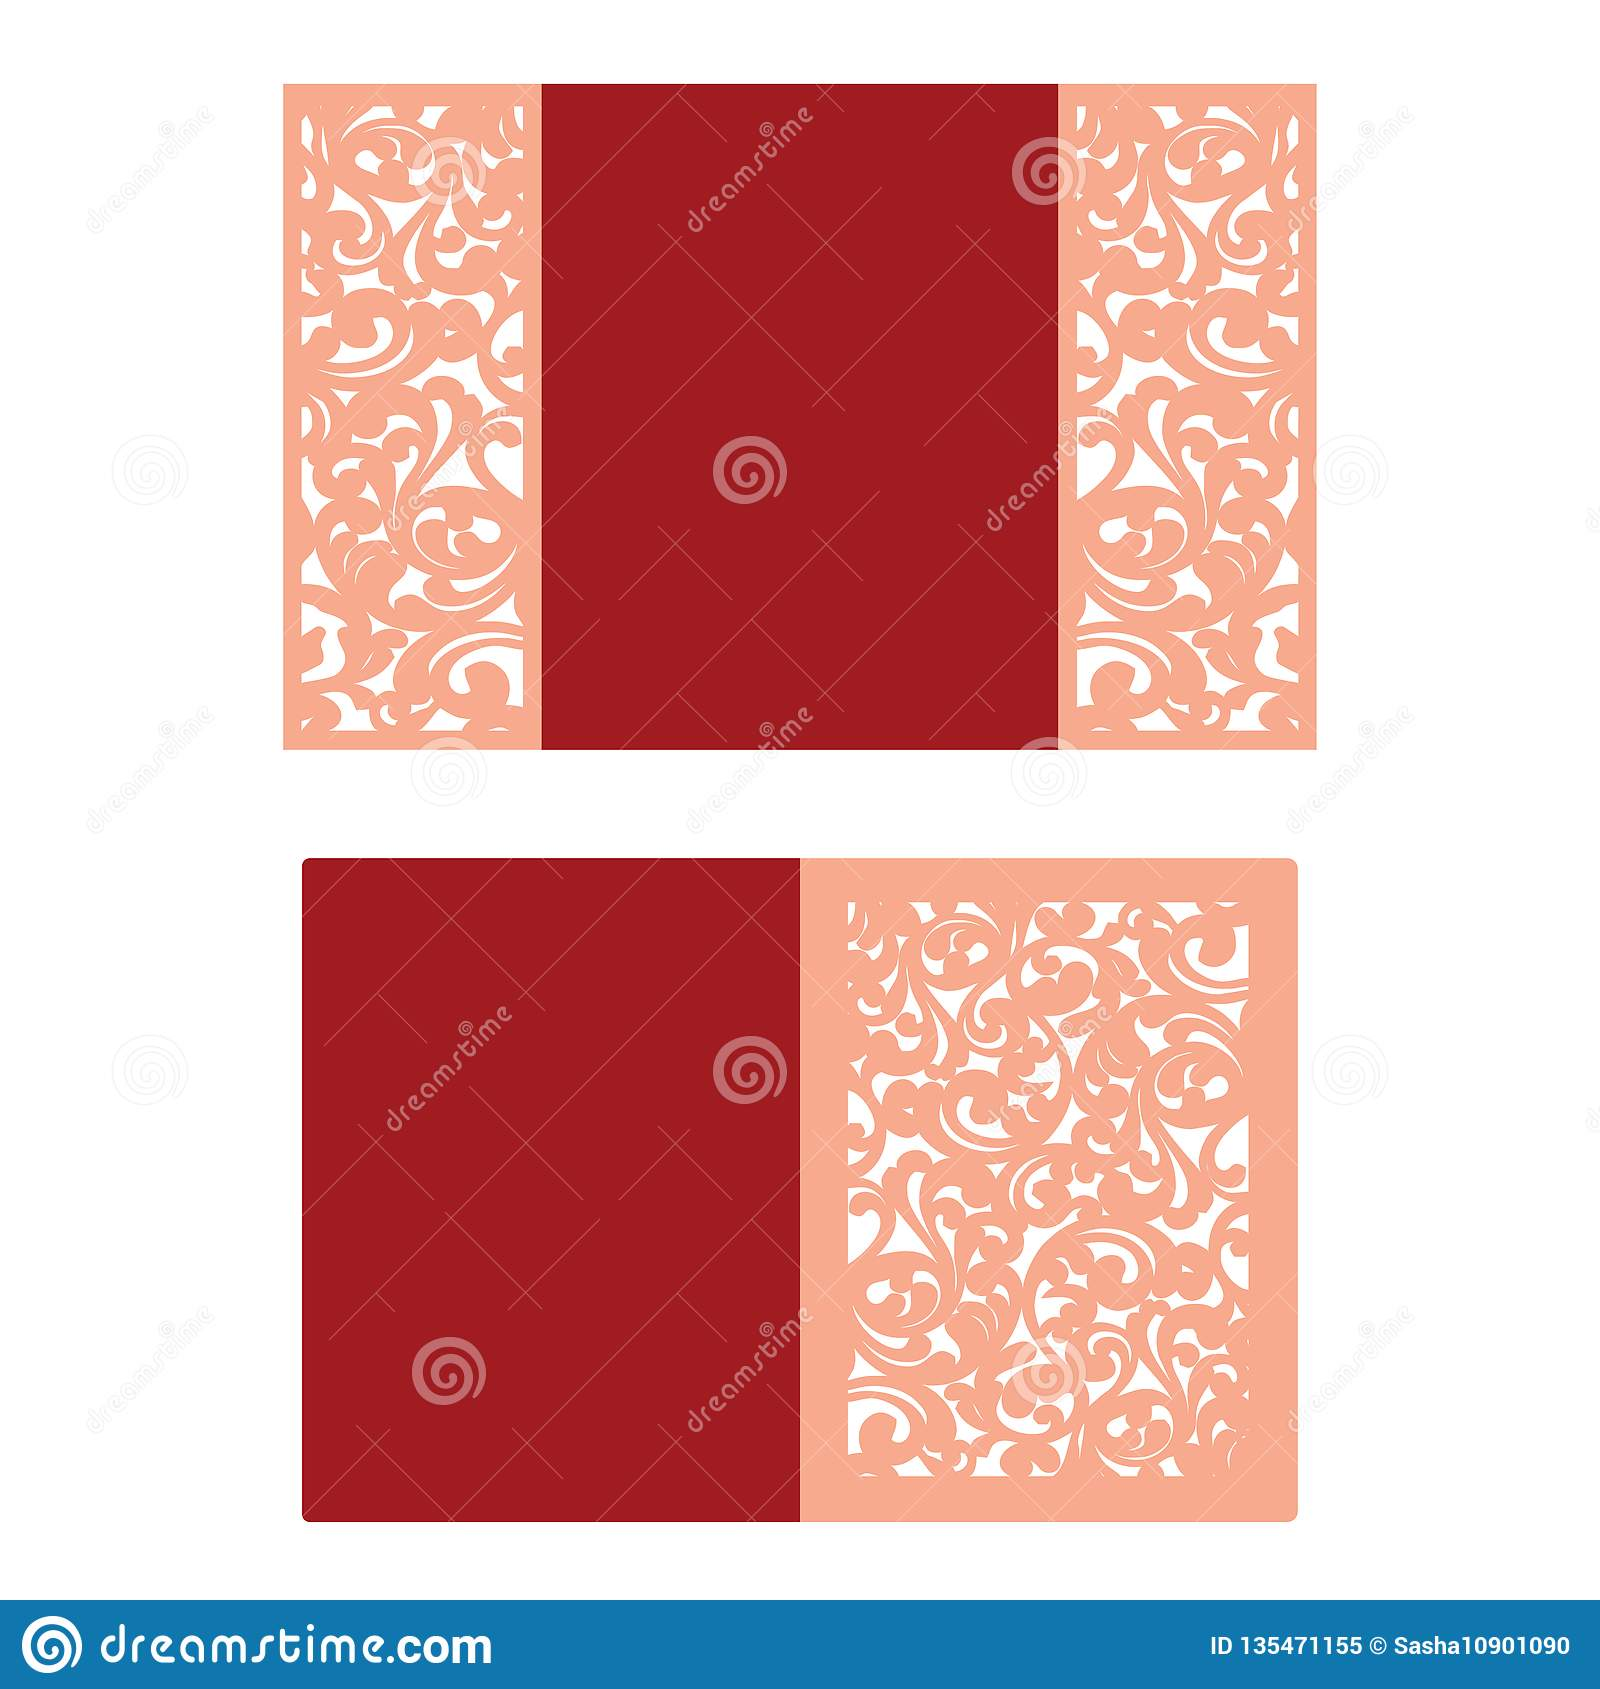 Paper Cut Out Card Laser Cut Pattern For Invitation Card